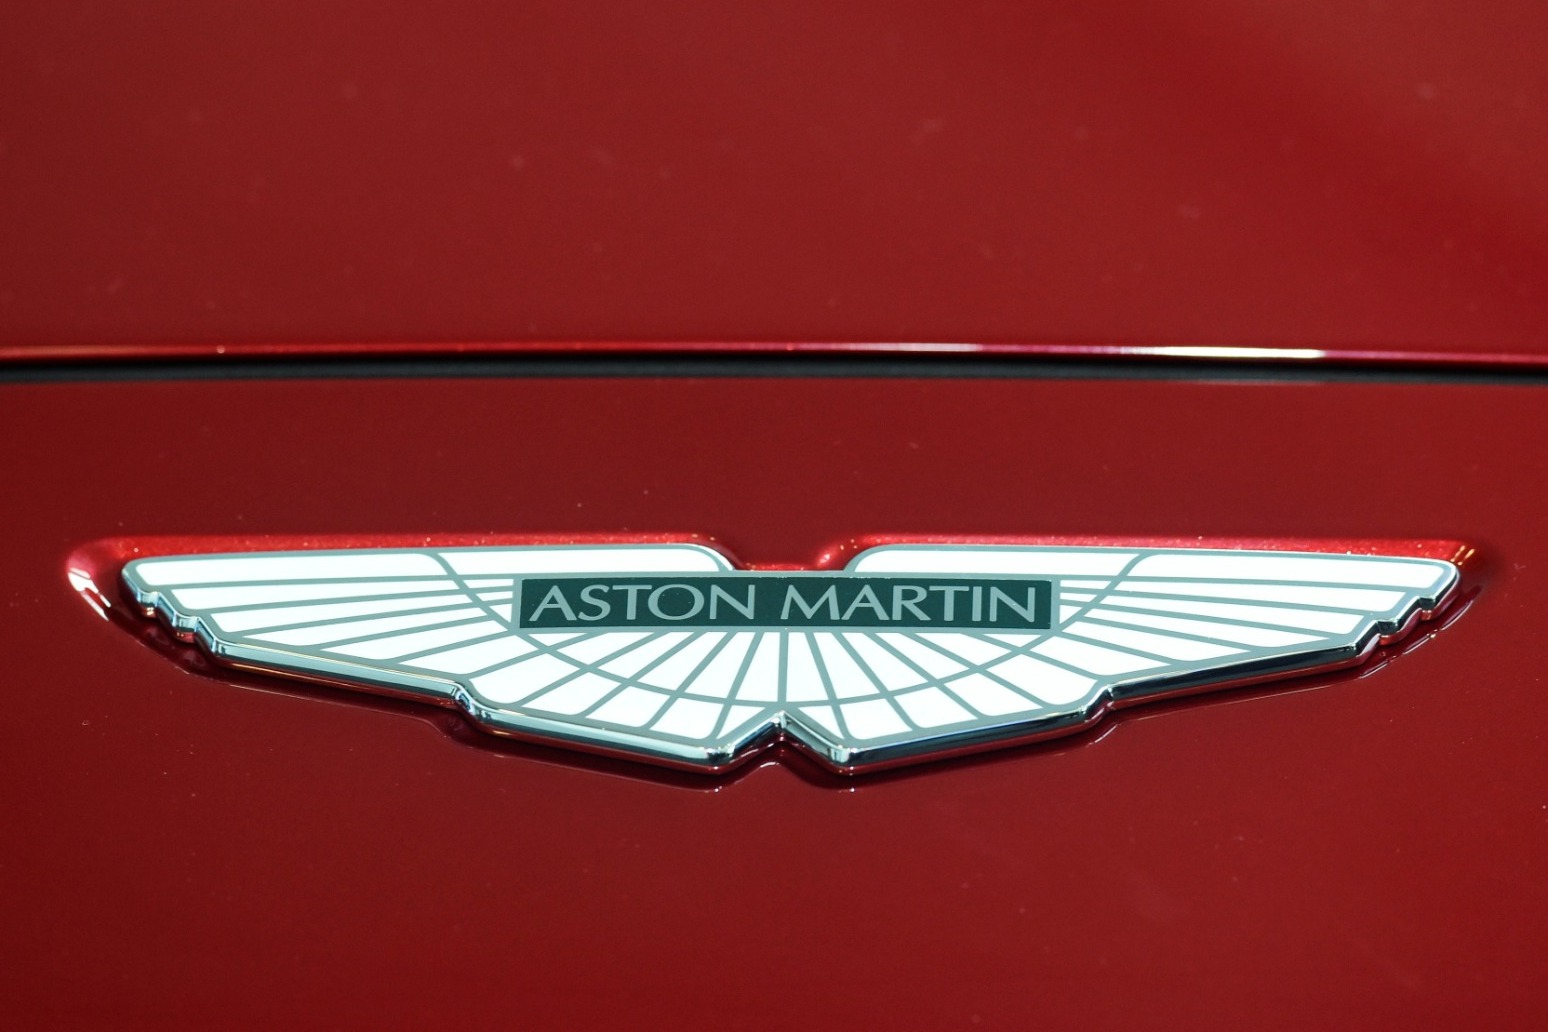 Losses soar as demand dries up for Aston Martin\'s cars